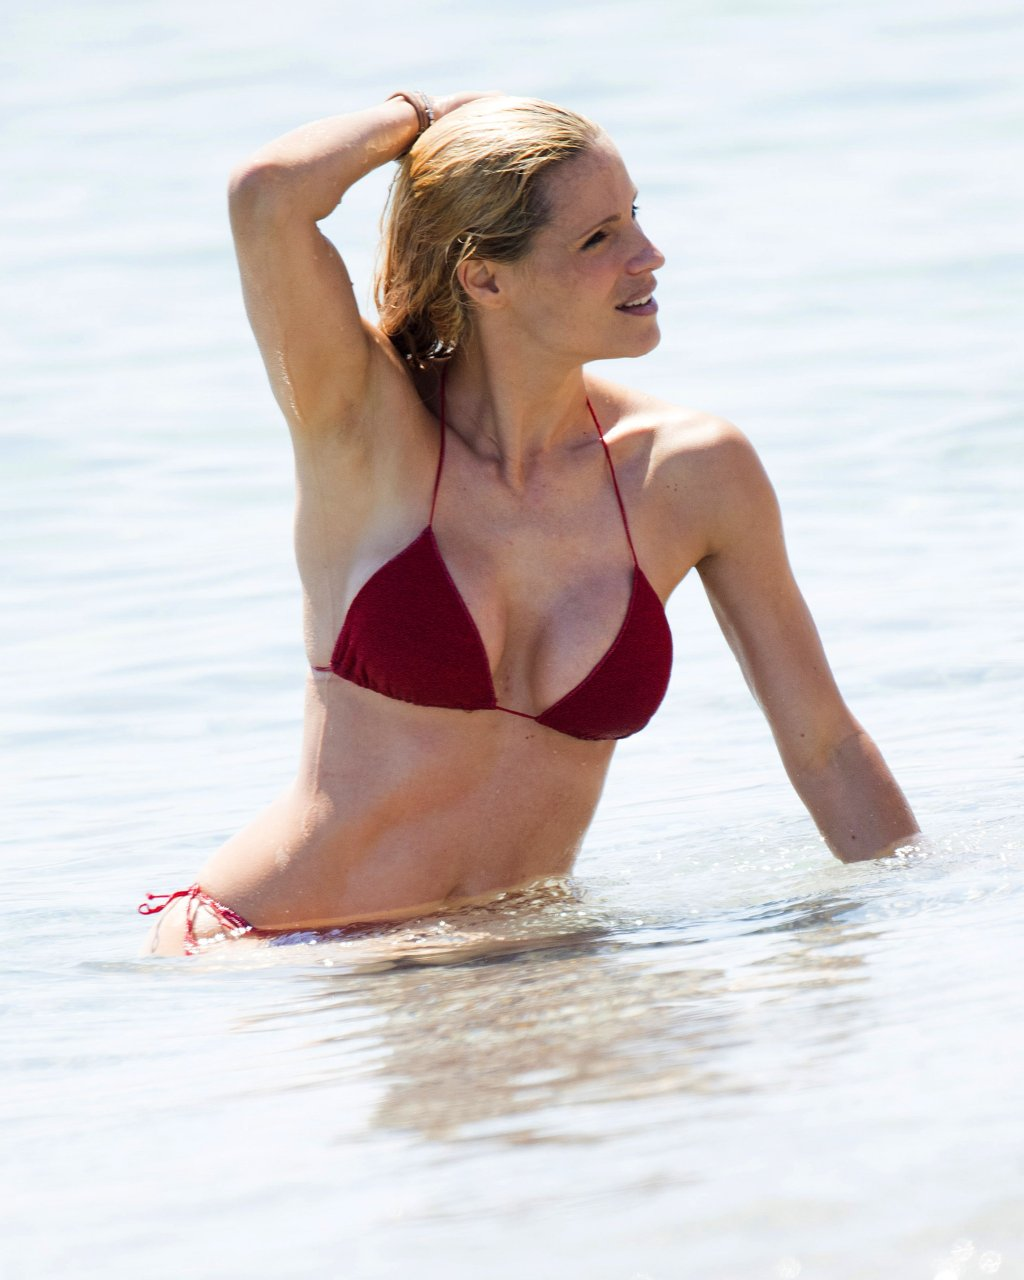 Teresa palmer new sexy photos,Celebrity Big Brother Potential Housemates In Full - Ish XXX pics & movies Ariane andrew see through,Paula pettans games